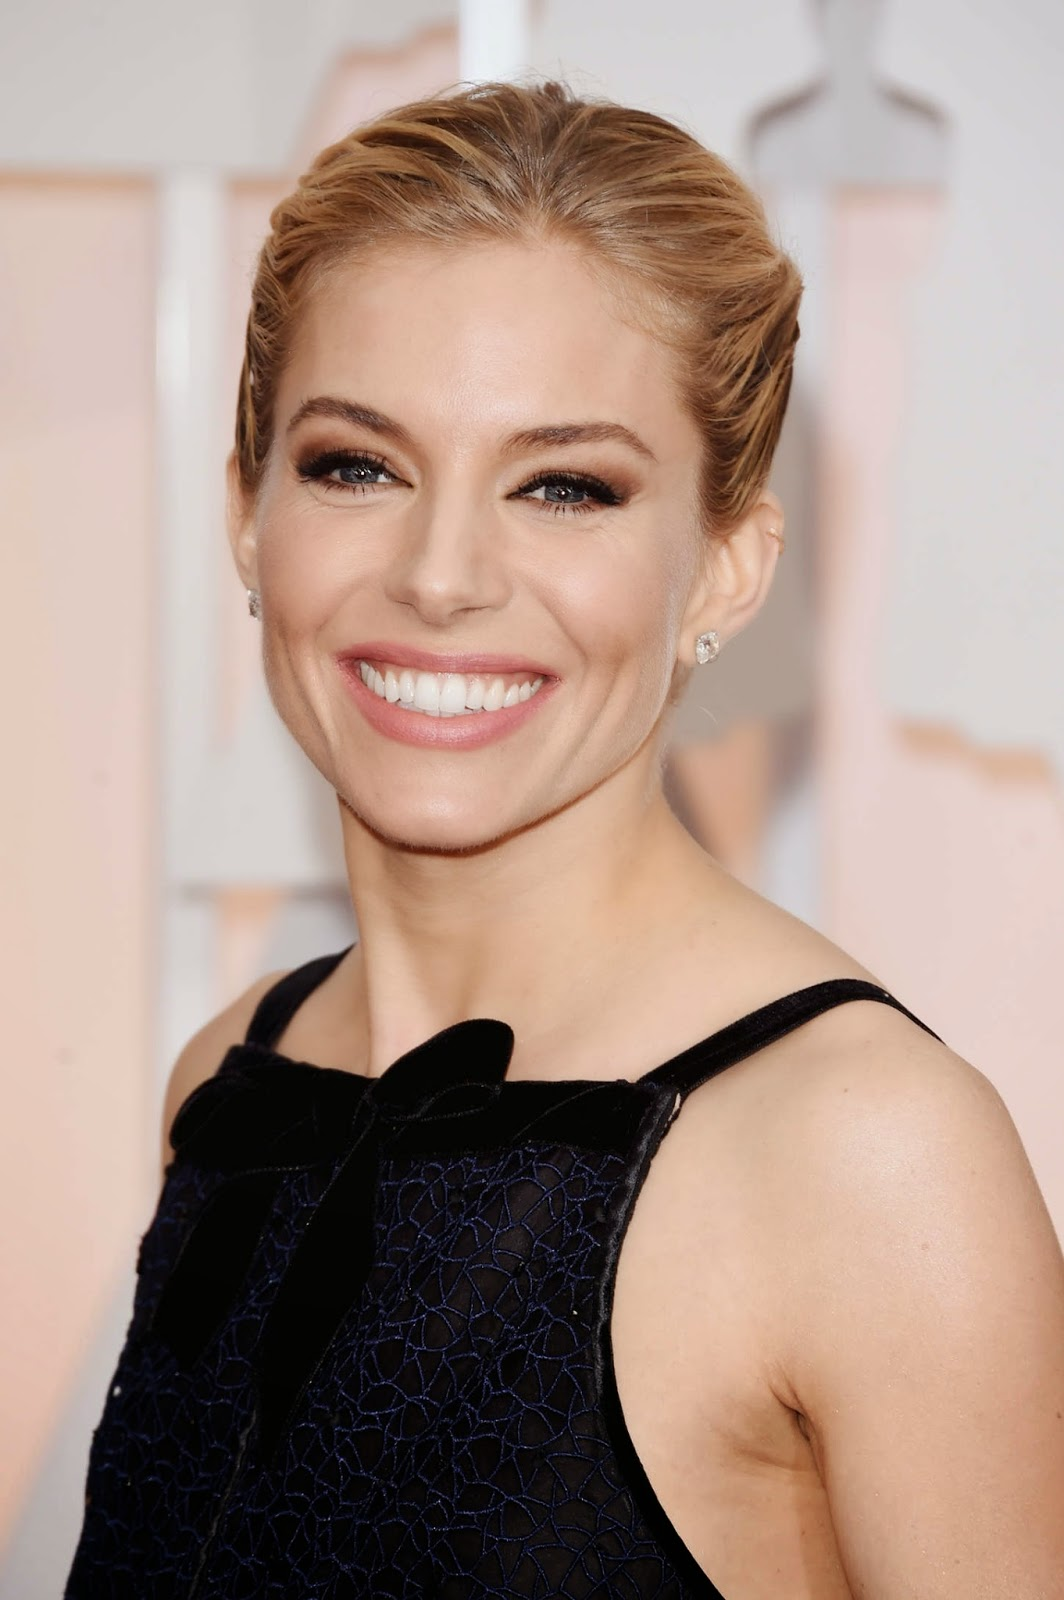 Sienna Miller wears Oscar de la Renta at the 2015 Oscars in Hollywood